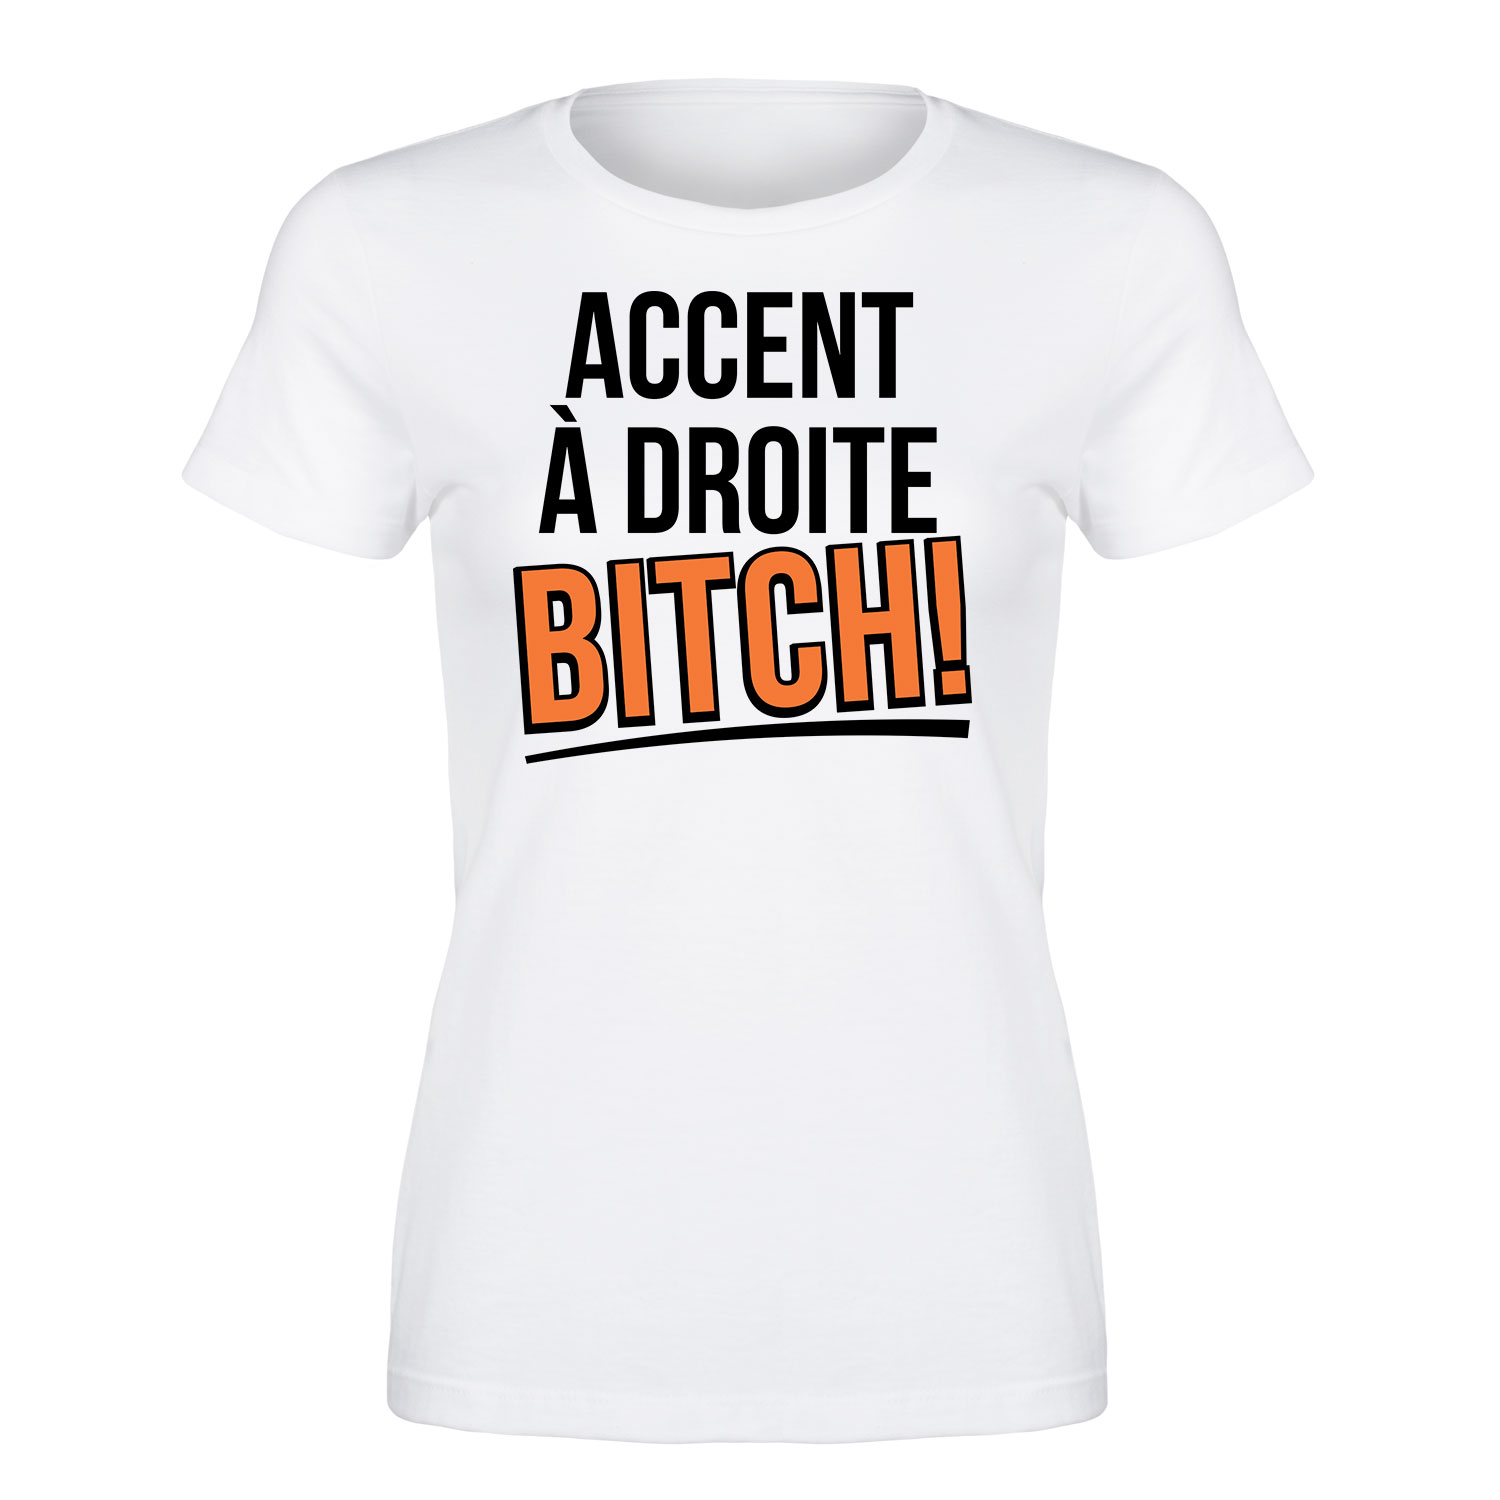 Accent A Droite Bitch Funny TV Humor-Womens T-Shirt